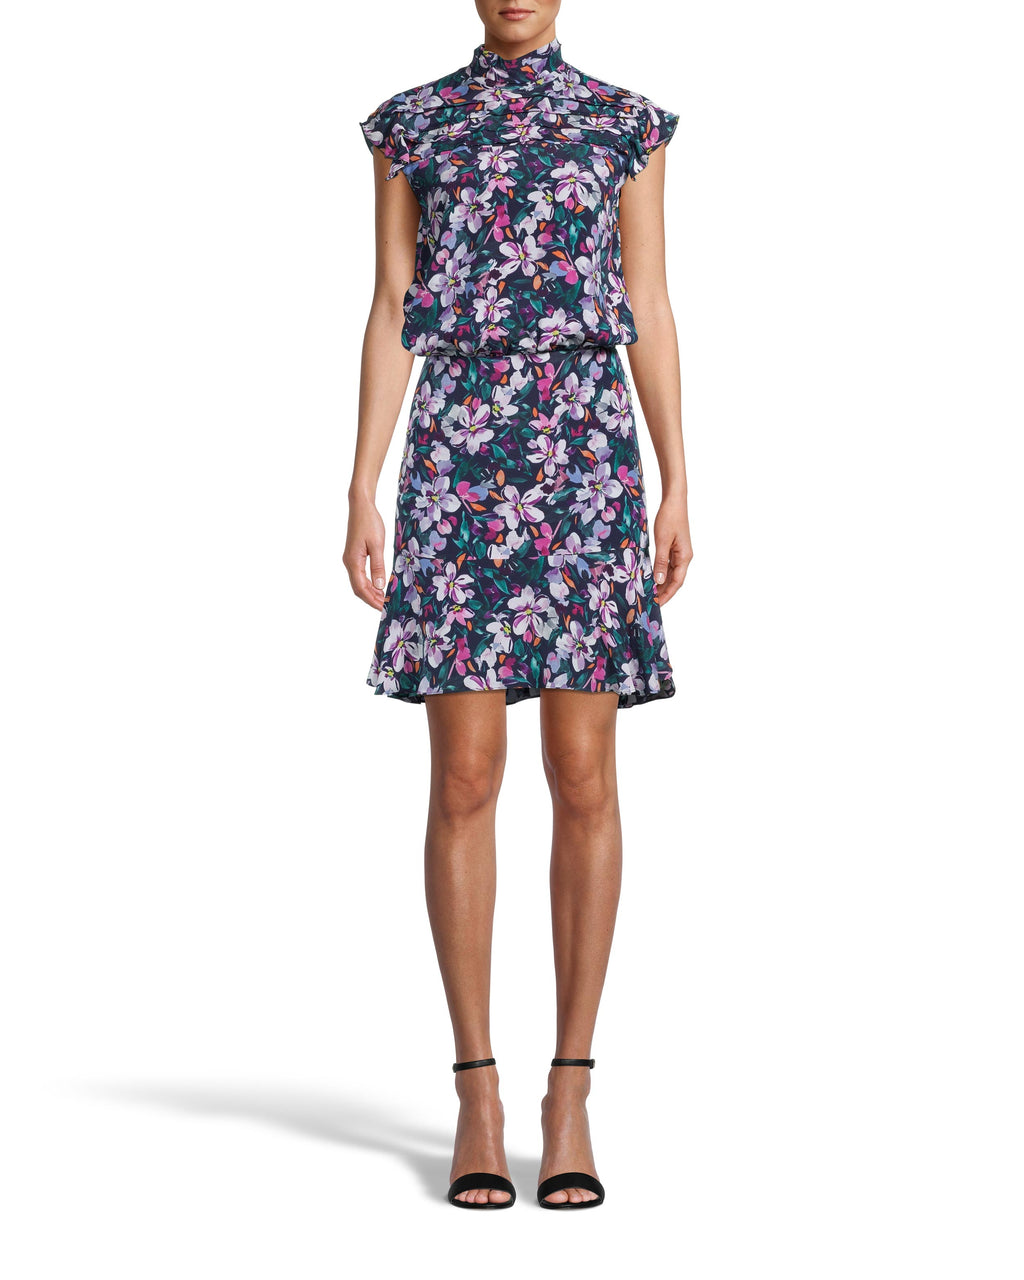 CD18357 - MIDNIGHT FLORAL HIGH NECK MINI DRESS - dresses - short - Meet the new perfect holiday mini. Designed in our bold midnight floral print, this flirty style features a mock neck with pleated details along the shoulders, a tucked waist and a ruffle hem. Add 1 line break Stylist tip: Style with pulled back hair, dangly earrings and neutral heels.